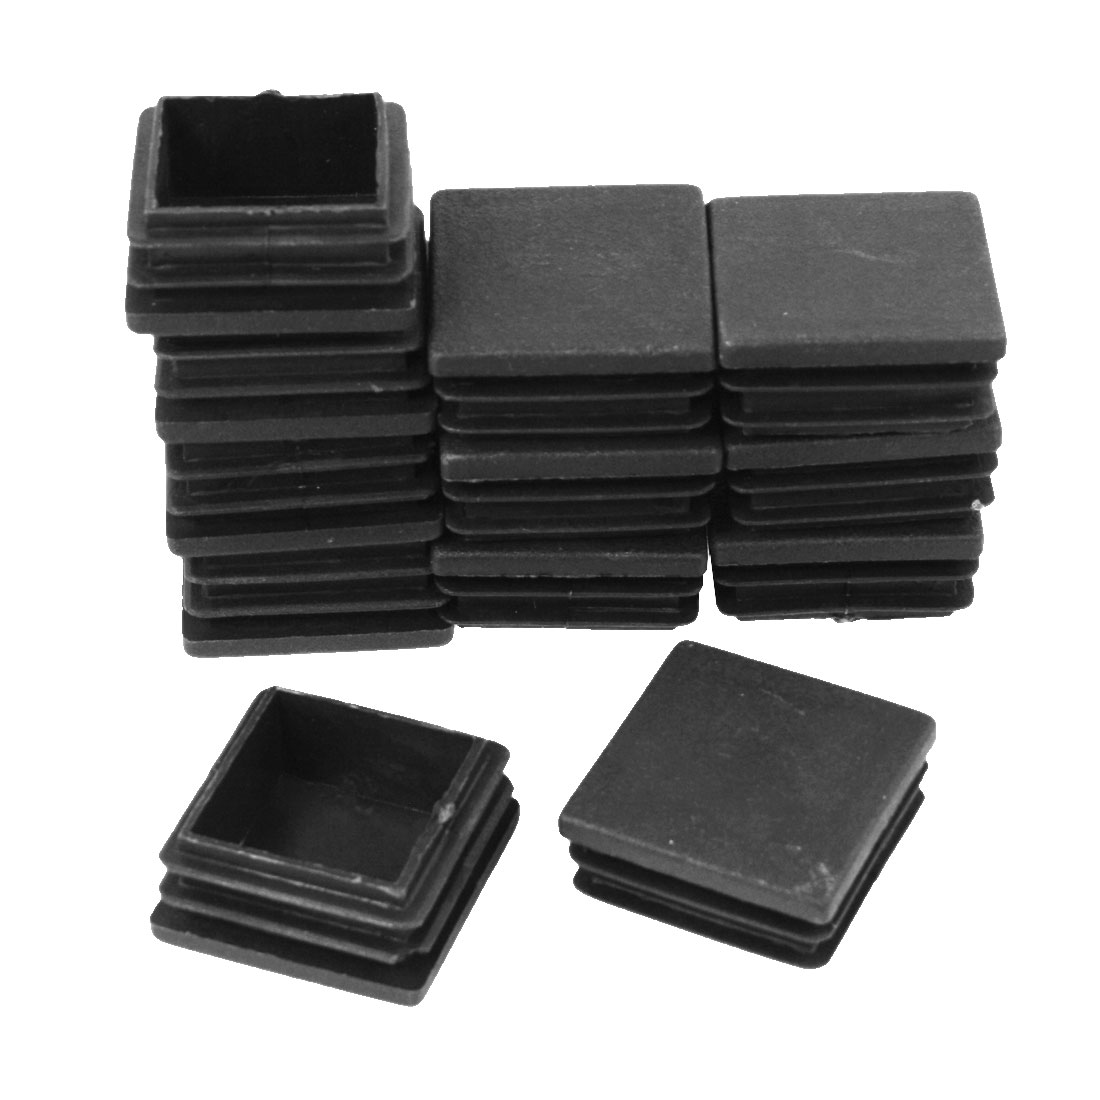 12 Pieces 38mm x 37mm Plastic Blanking End Caps Cover Square Tubing Tube Pipe Insert Black